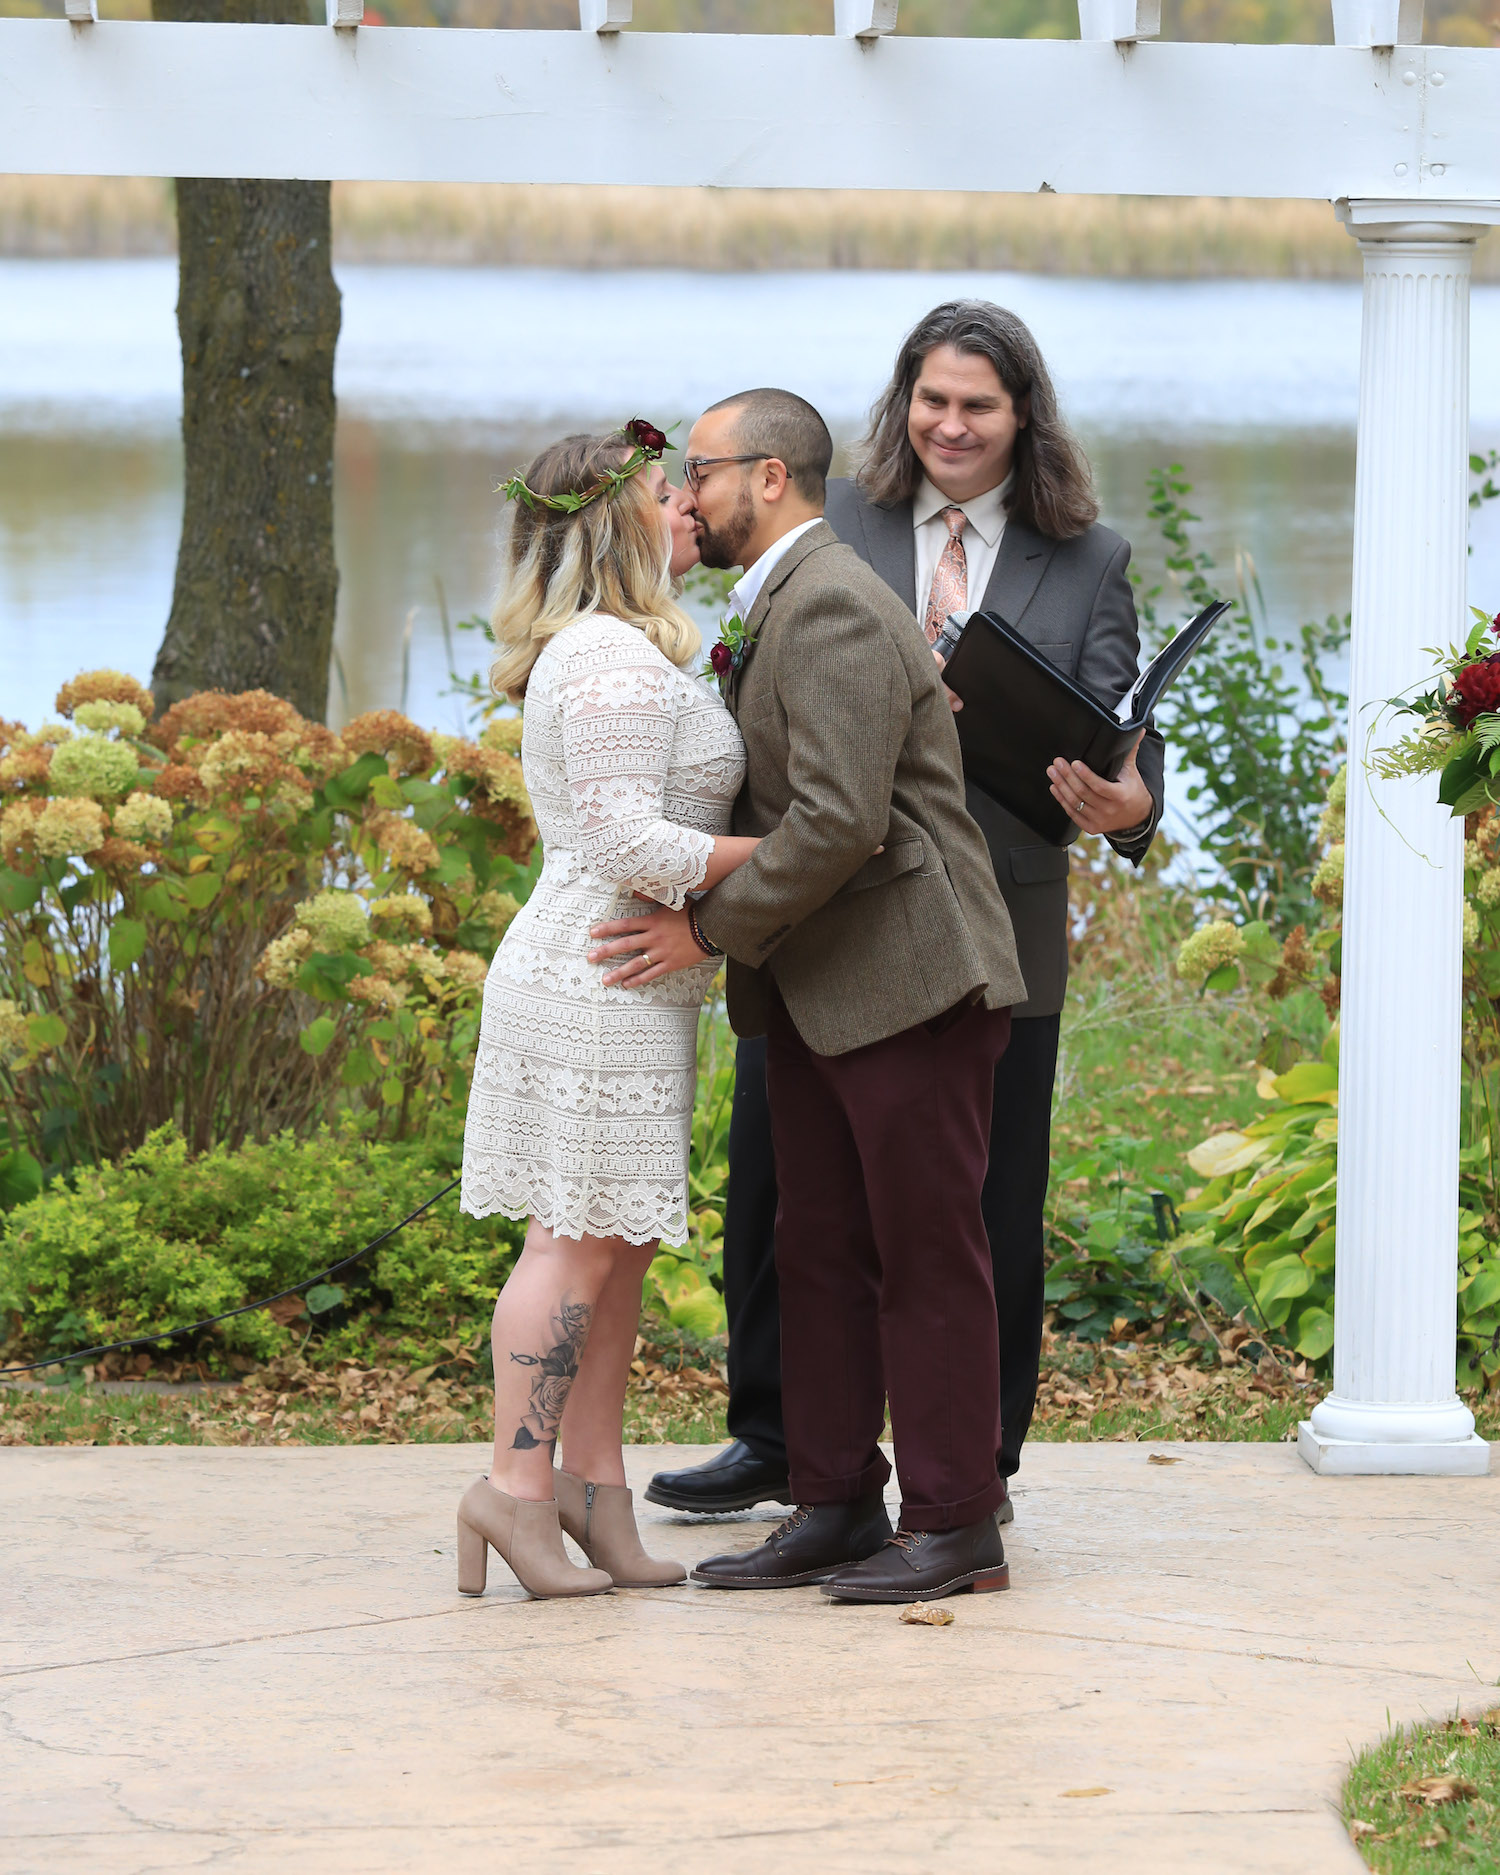 Cindyrella's Garden, outdoor ceremony on the lake in Minnesota, first kiss